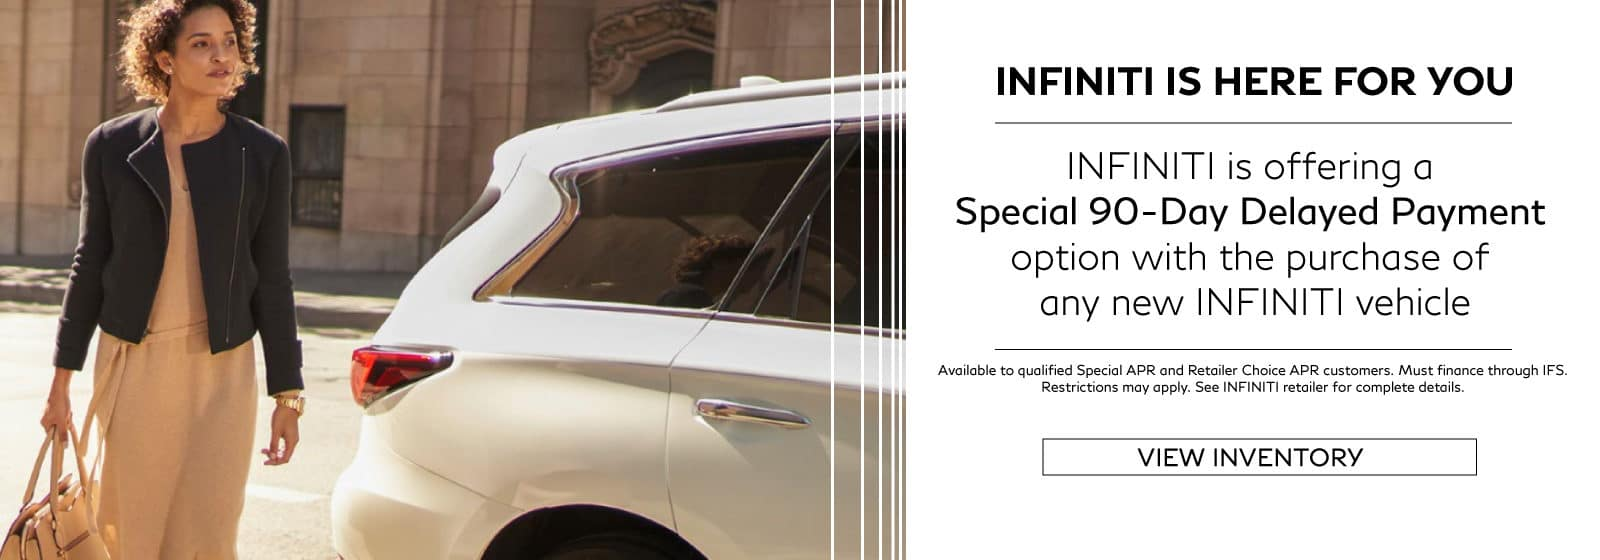 Special 90-Day Delayed Payment program for select New INFINITI vehicles. restrictions may apply. See retailer for complete details.